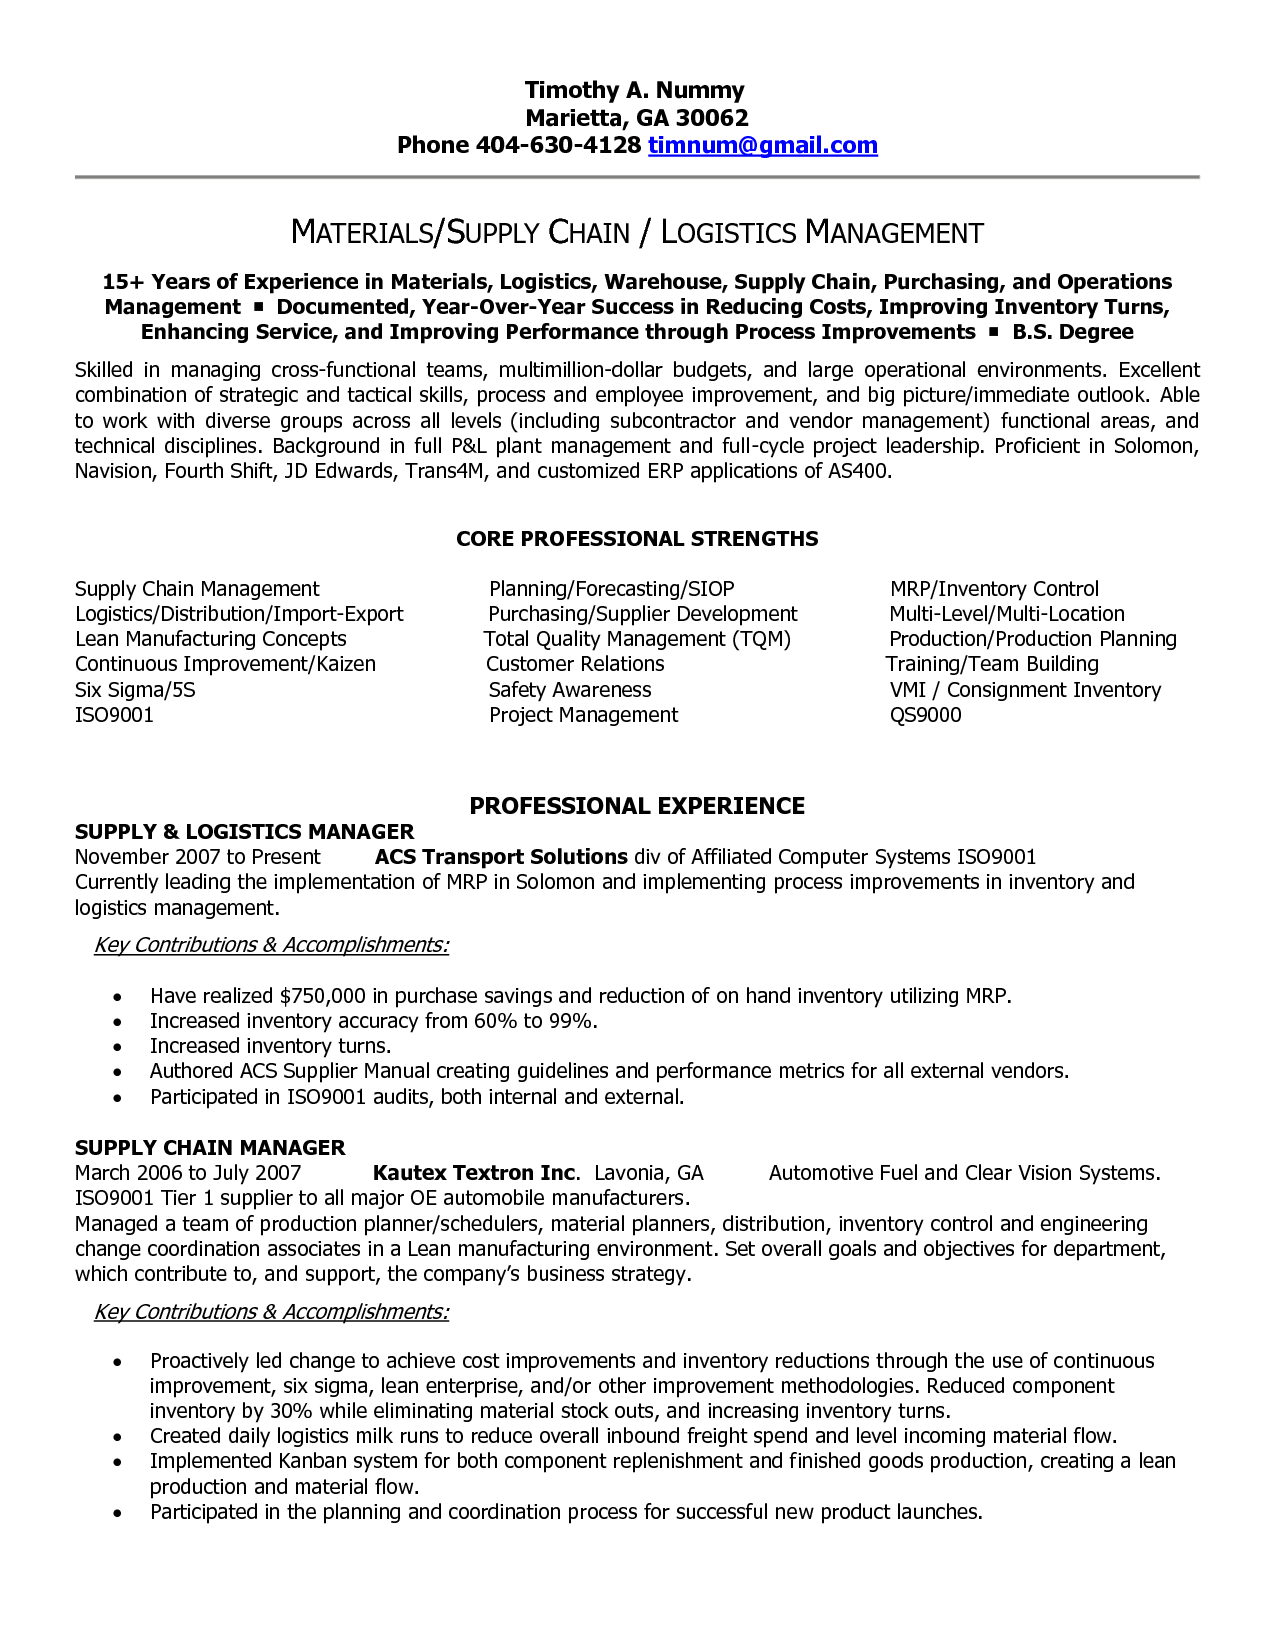 Supply Chain Manager Resume Supply Chain Resume Templates  Supply Chain Manager In Atlanta Ga